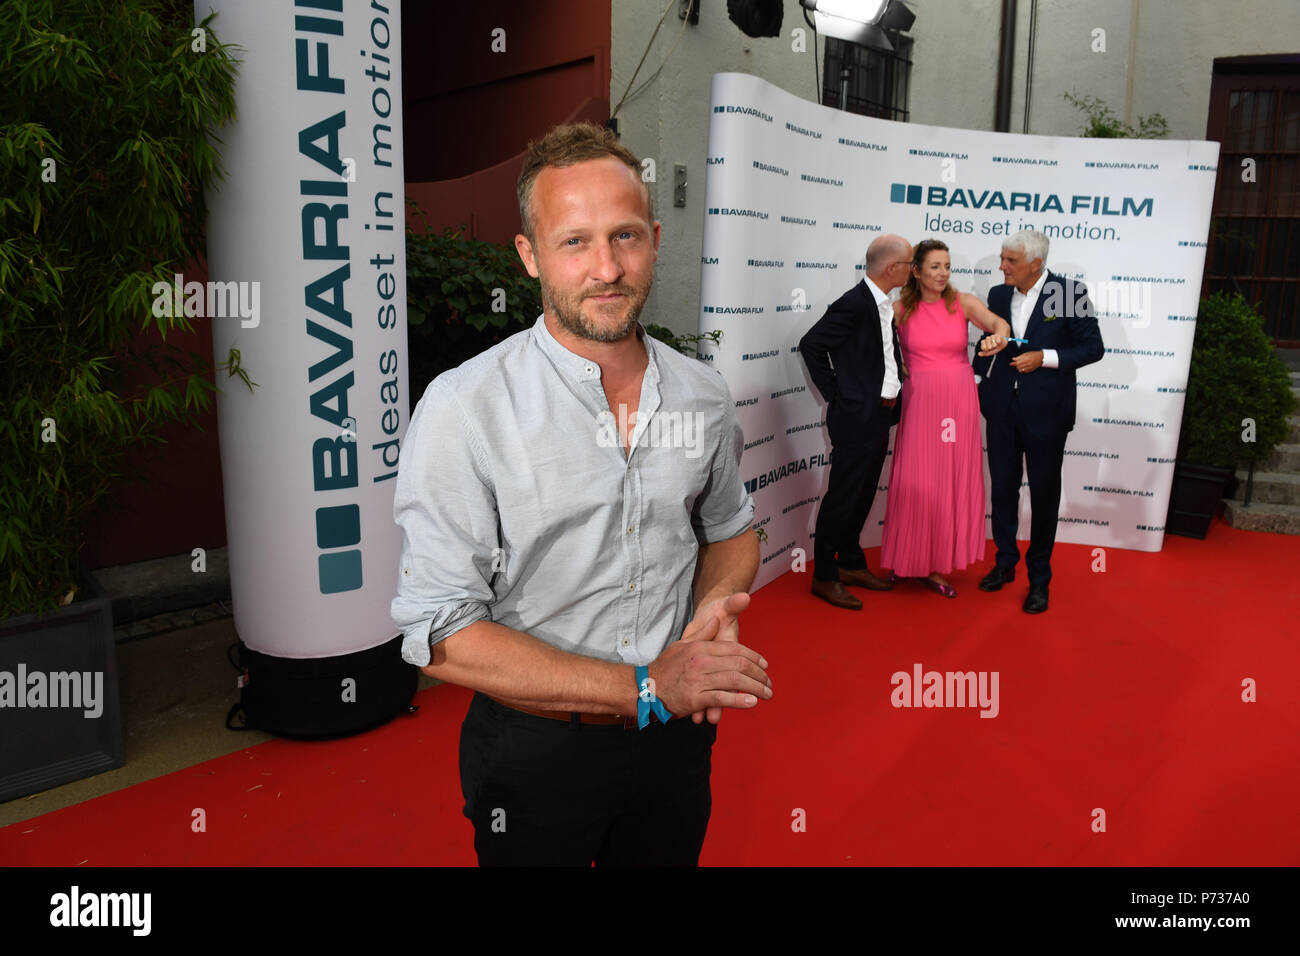 03 July 2018, Germany, Munich: Actor Maximilian Brueckner attends the Bavaria Film reception at the Kuenstlerhaus, an event hosted on occasion of the Film Festival Munich. Photo: Felix Hörhager/dpa - Stock Image